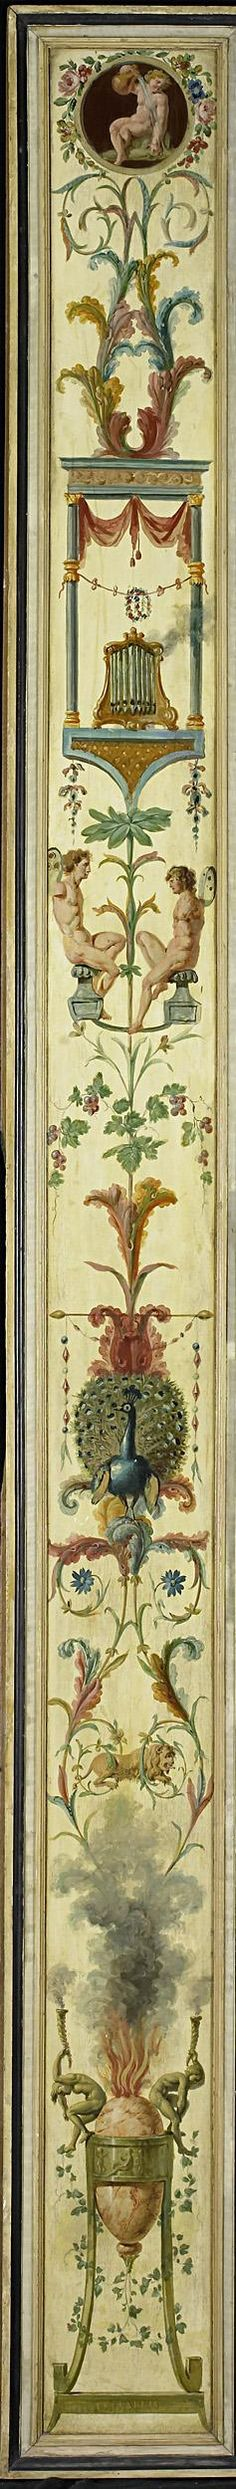 Jan Kamphuysen (Amsterdam 1760-1841) Re-Create this with Deco Haven Artistry, Murals  Decorative Painting!